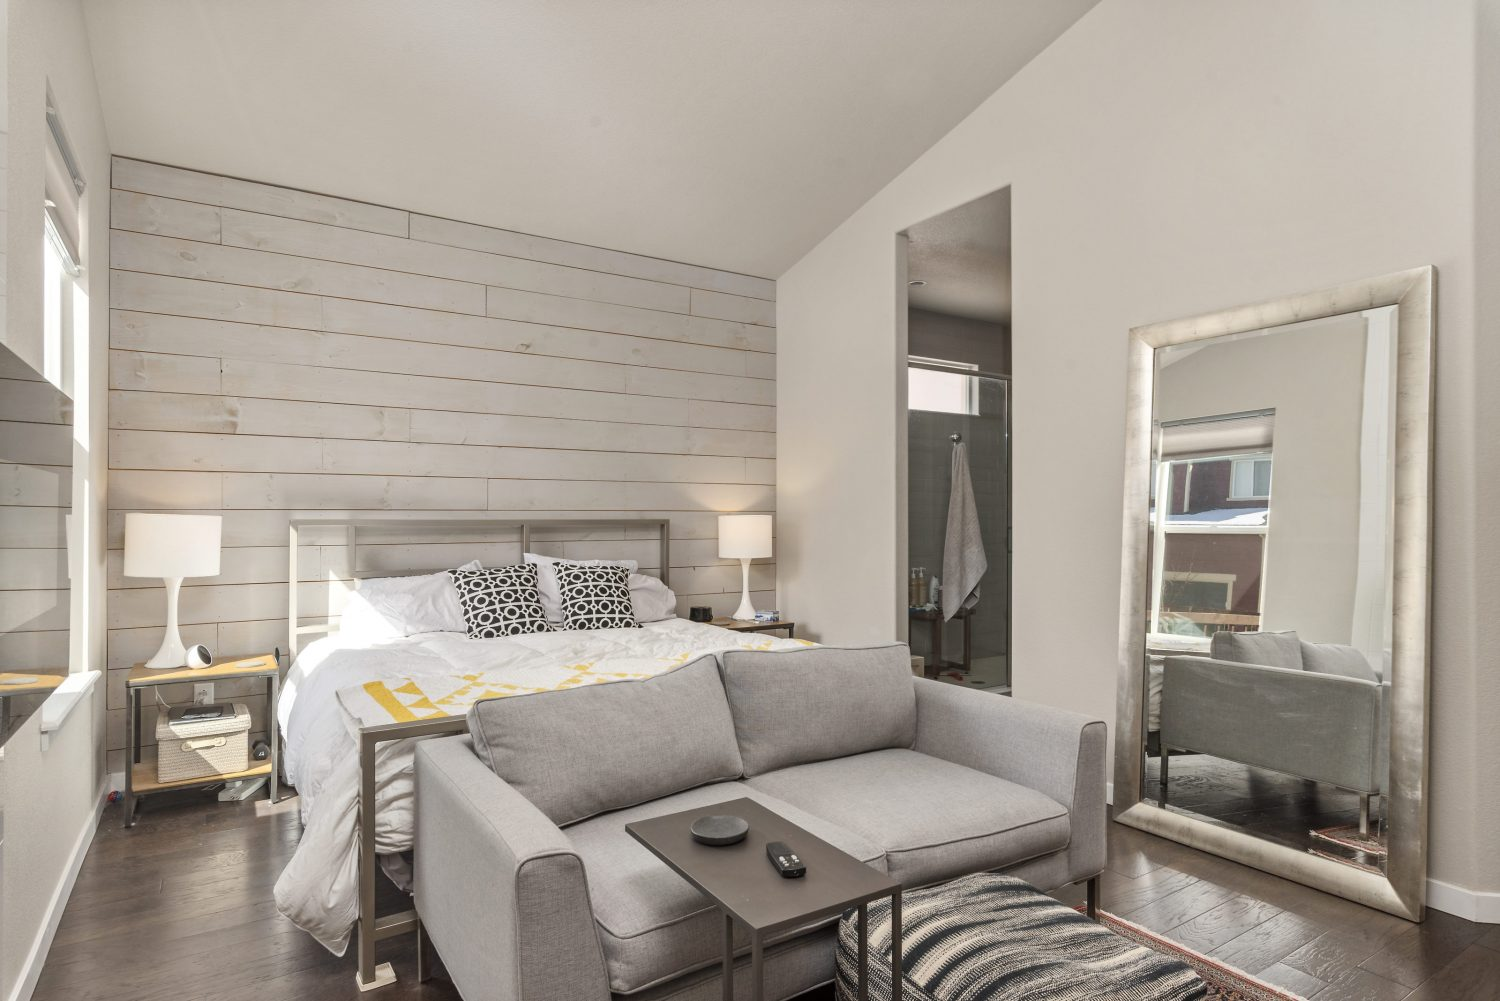 picture of master bedroom with grey accents.